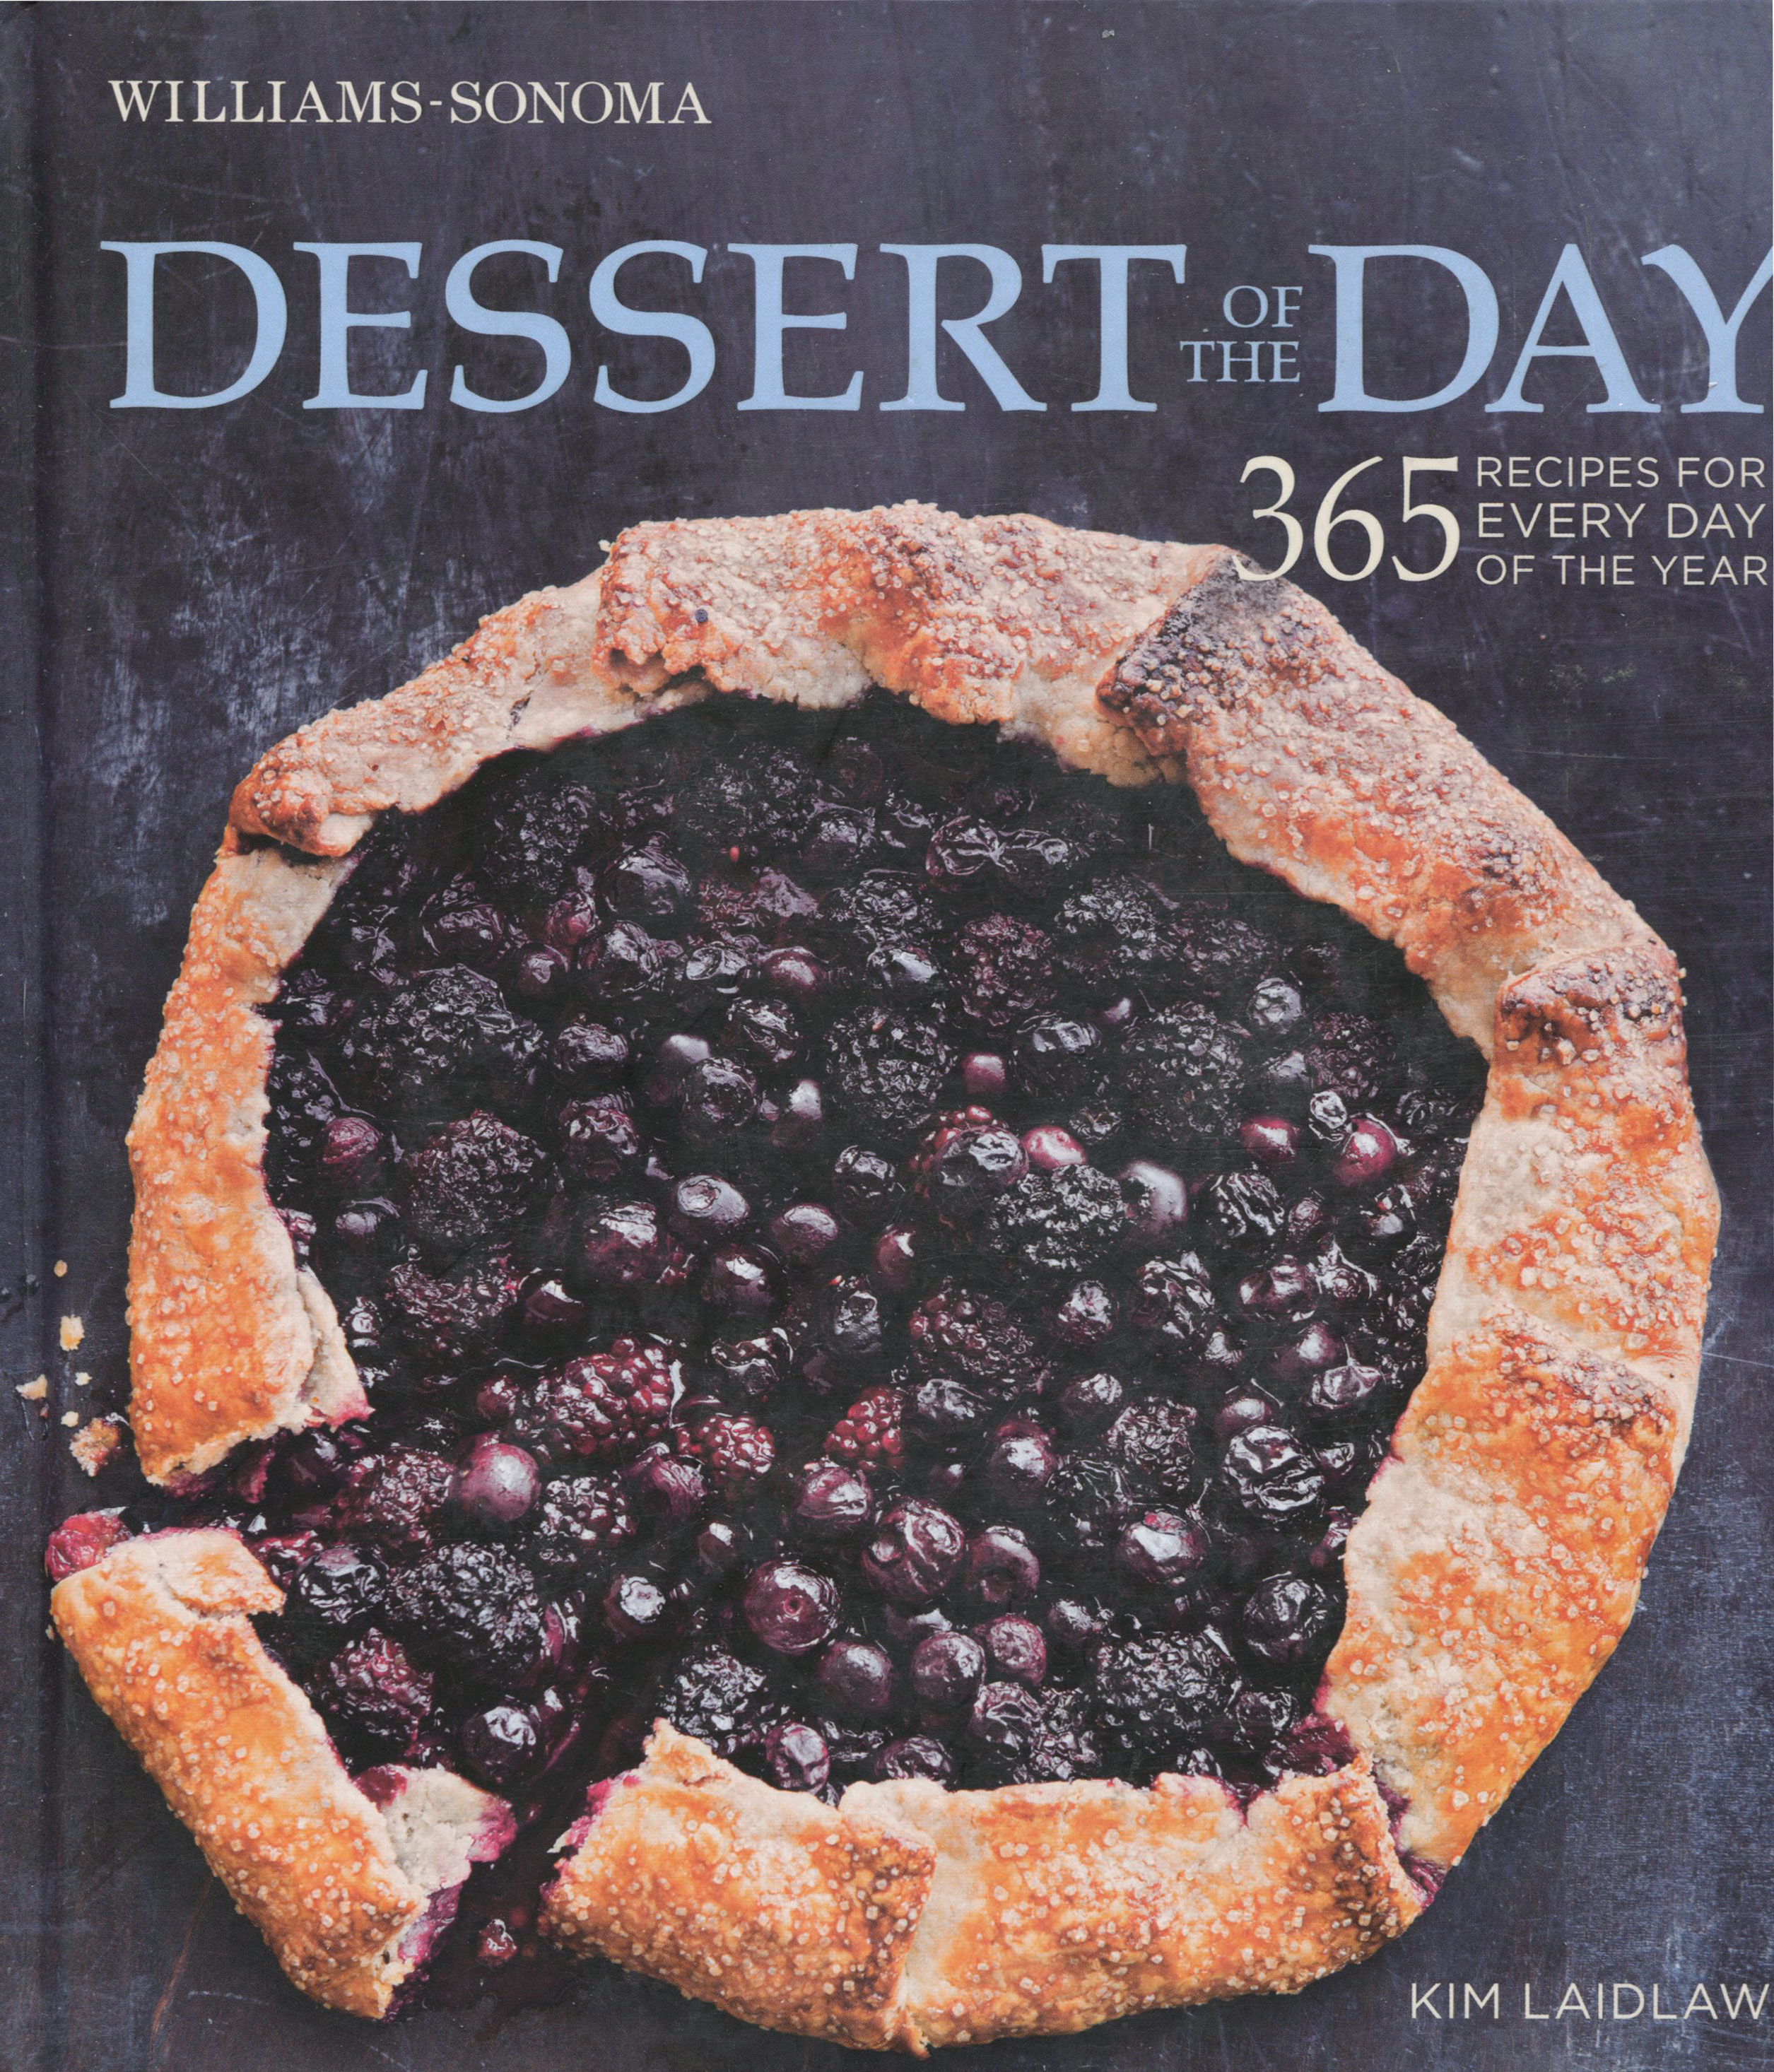 TBT Cookbook Review: Dessert of the Day by Kim Laidlaw